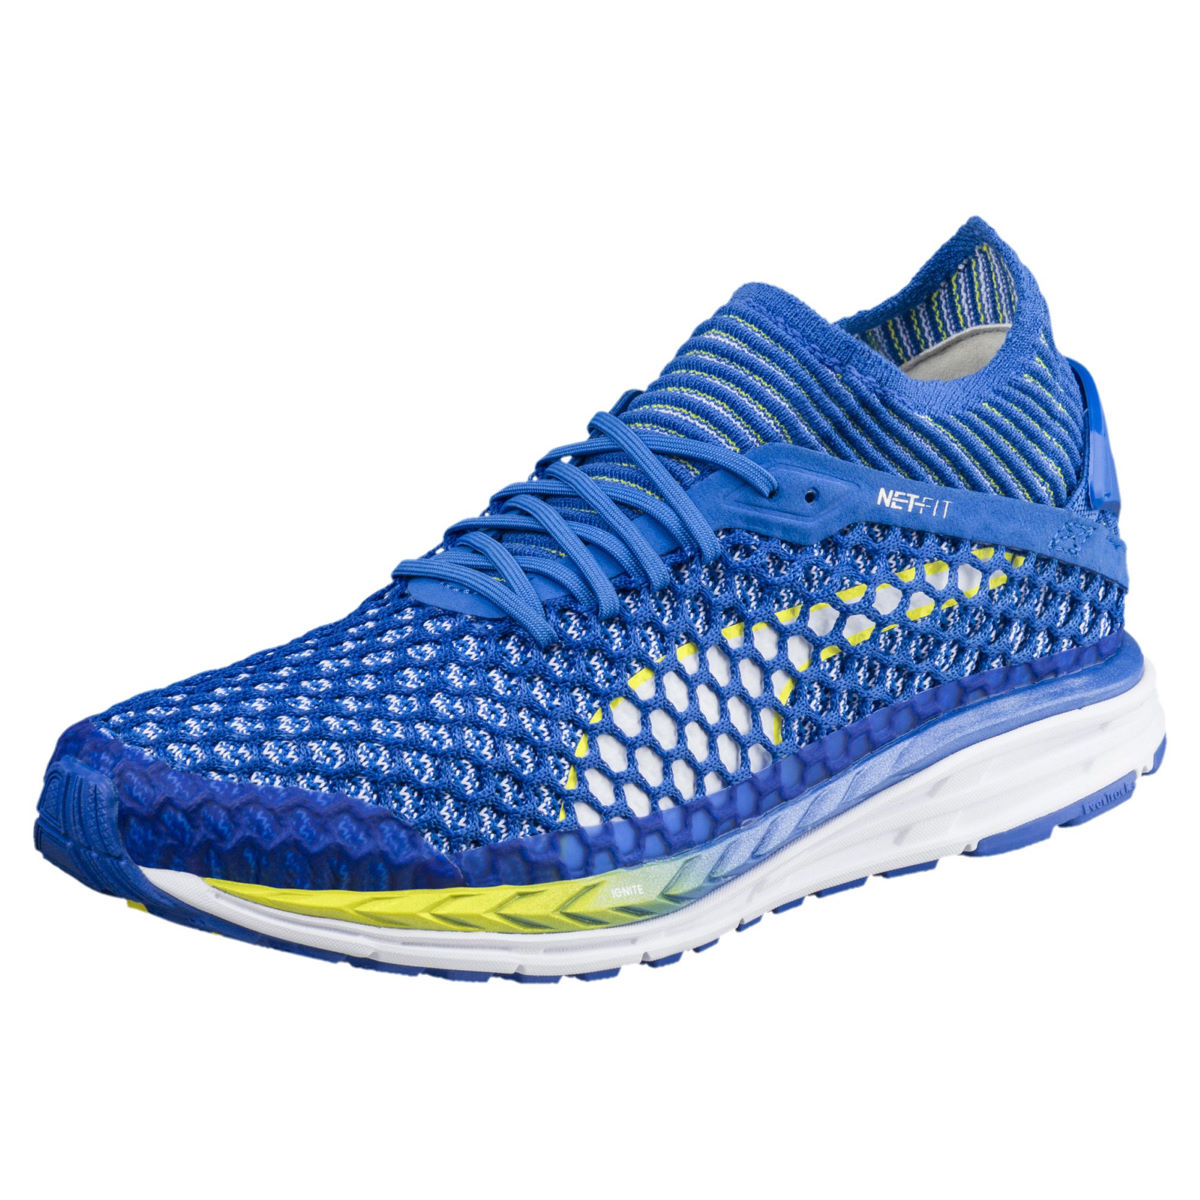 Chaussures Femme Puma Speed Ignite Netfit 2 - UK 4 blue-lemon-white